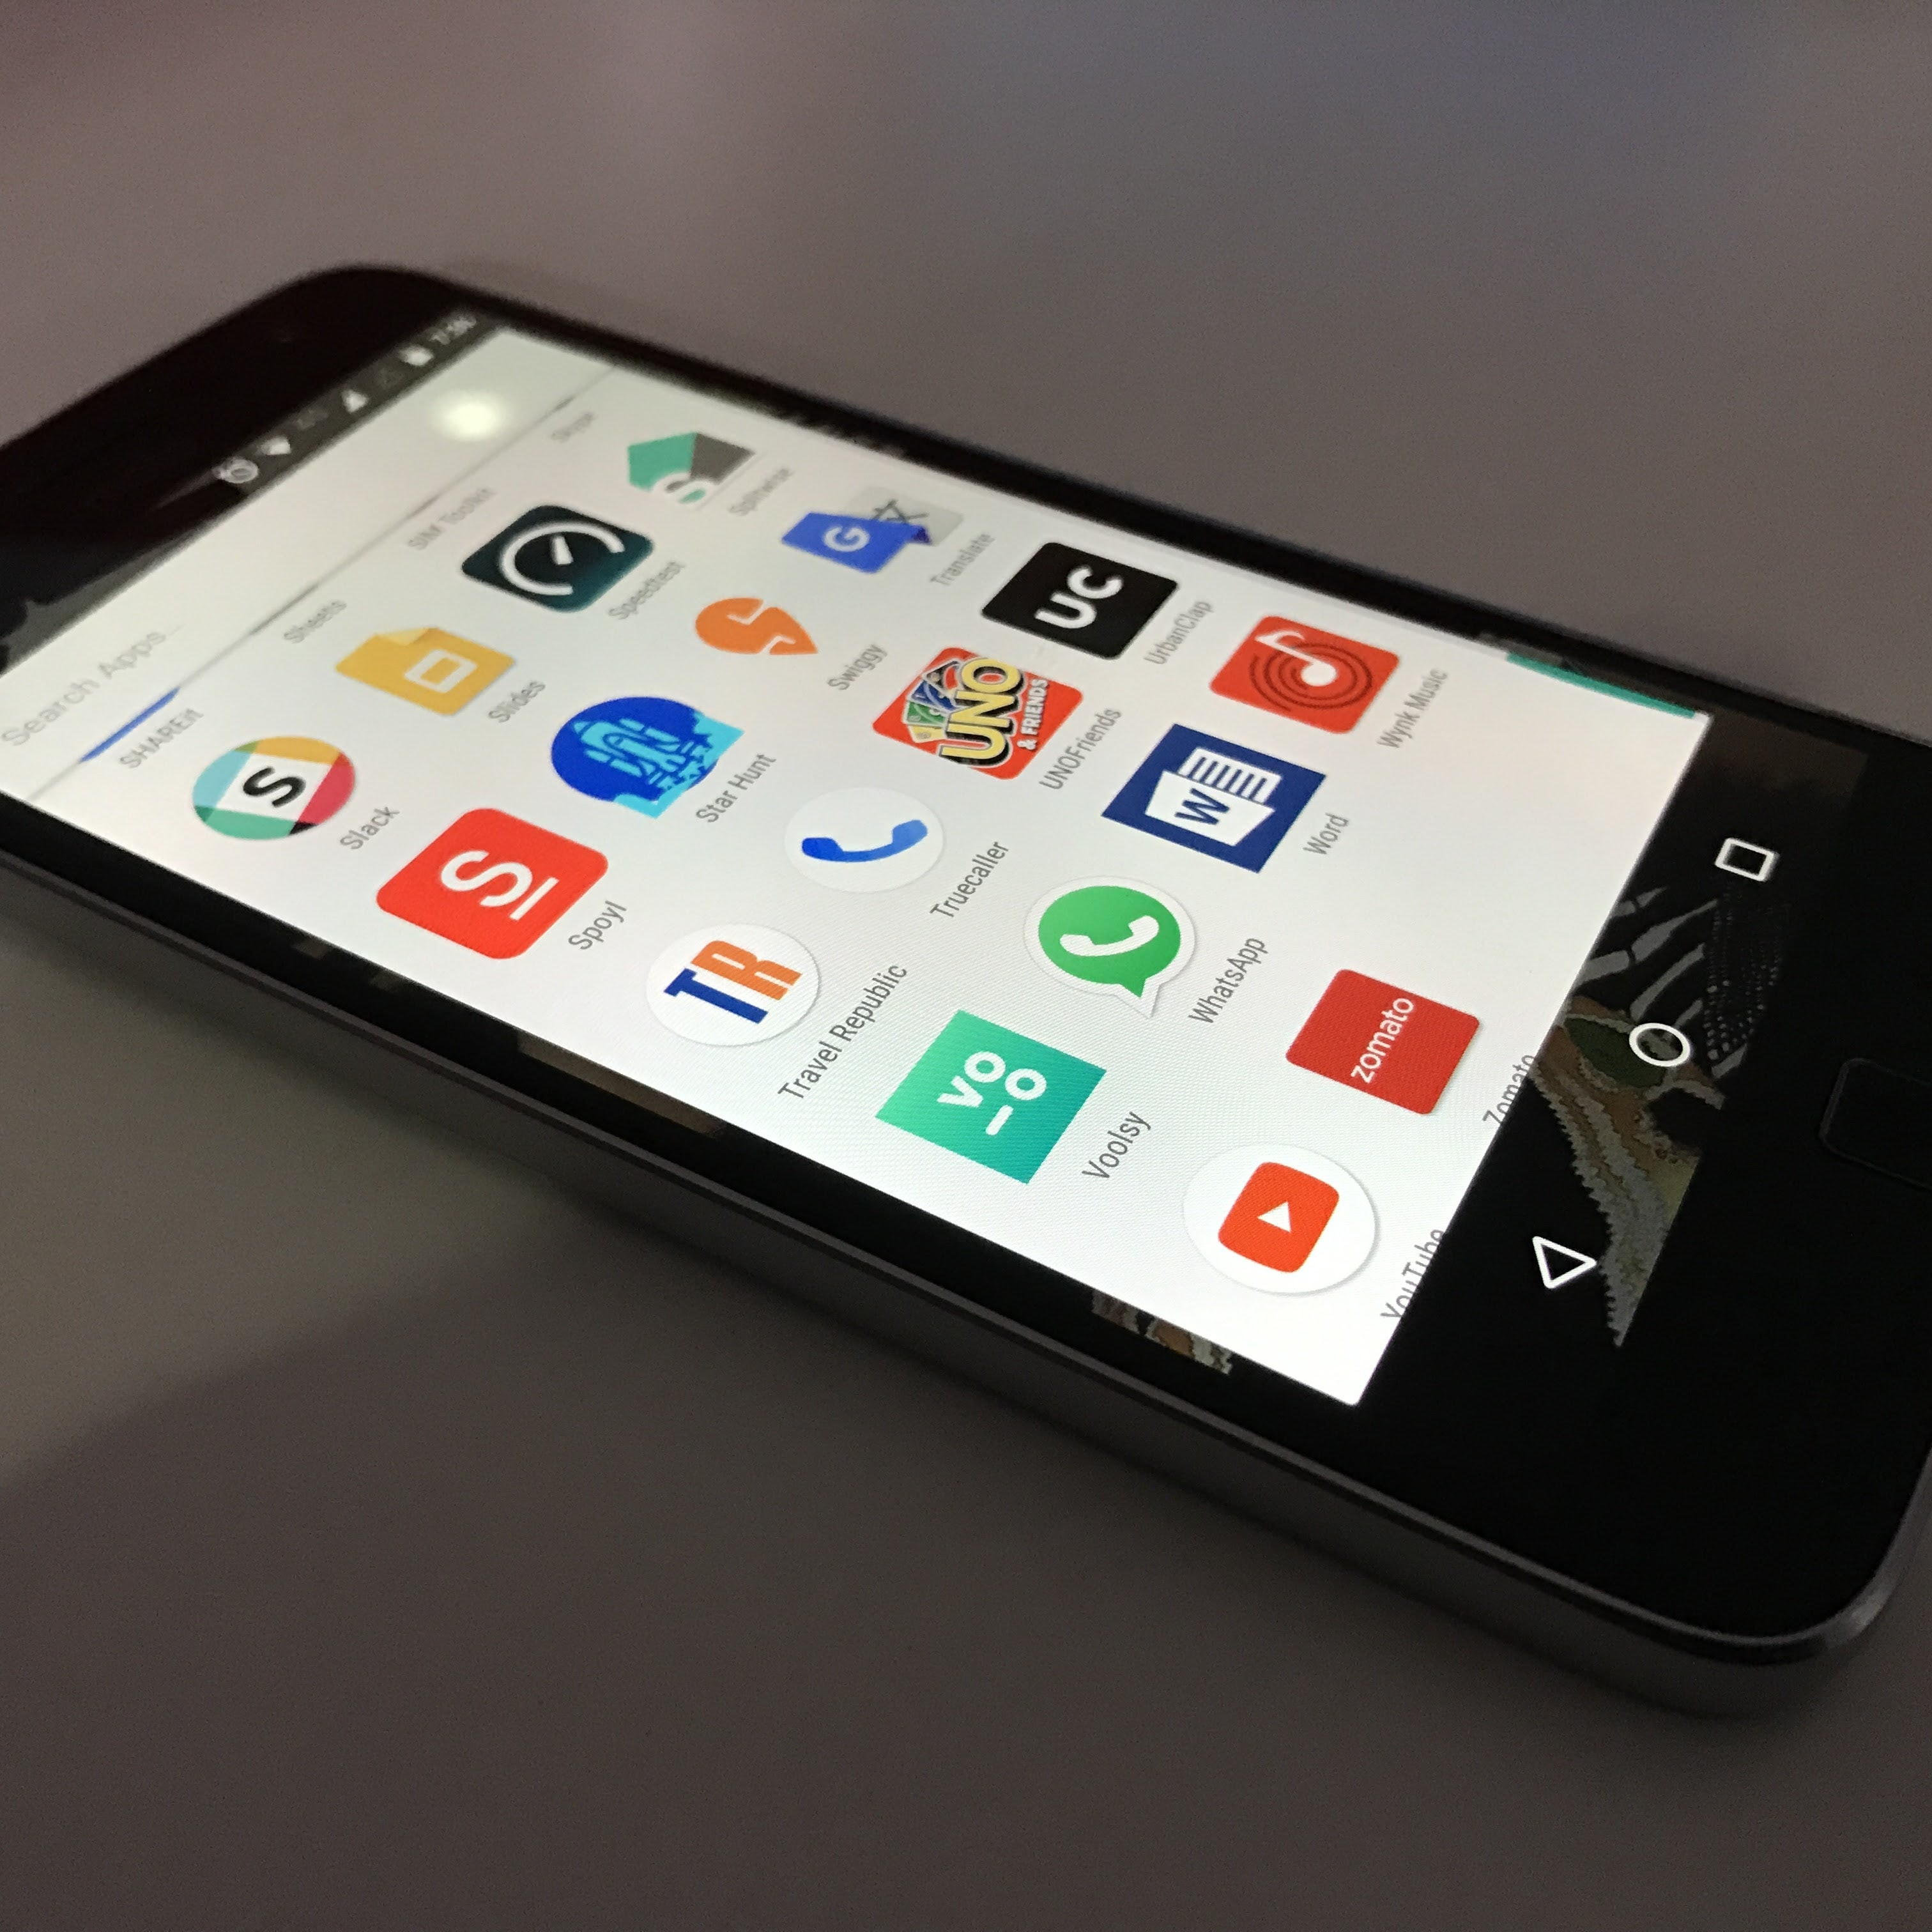 black Android smartphone lying on gray surface